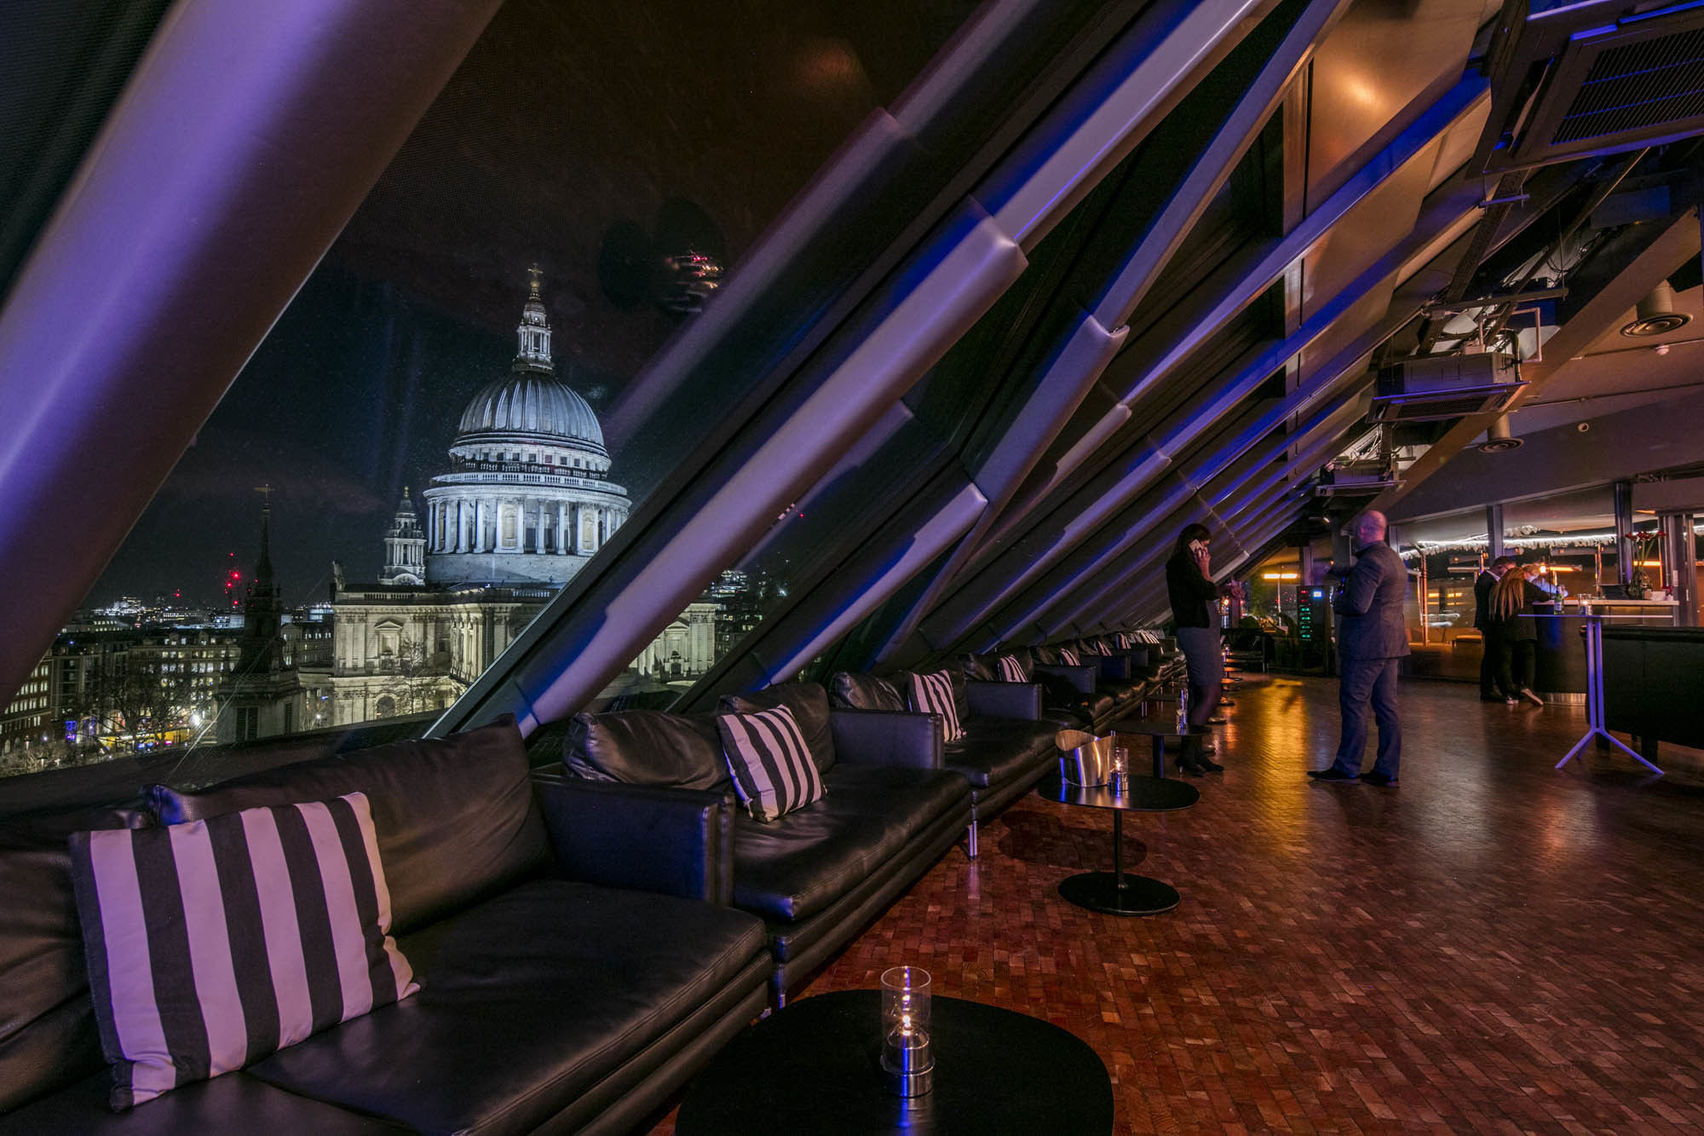 A covered rooftop lounge at night with views of St. Paul's Cathedral.